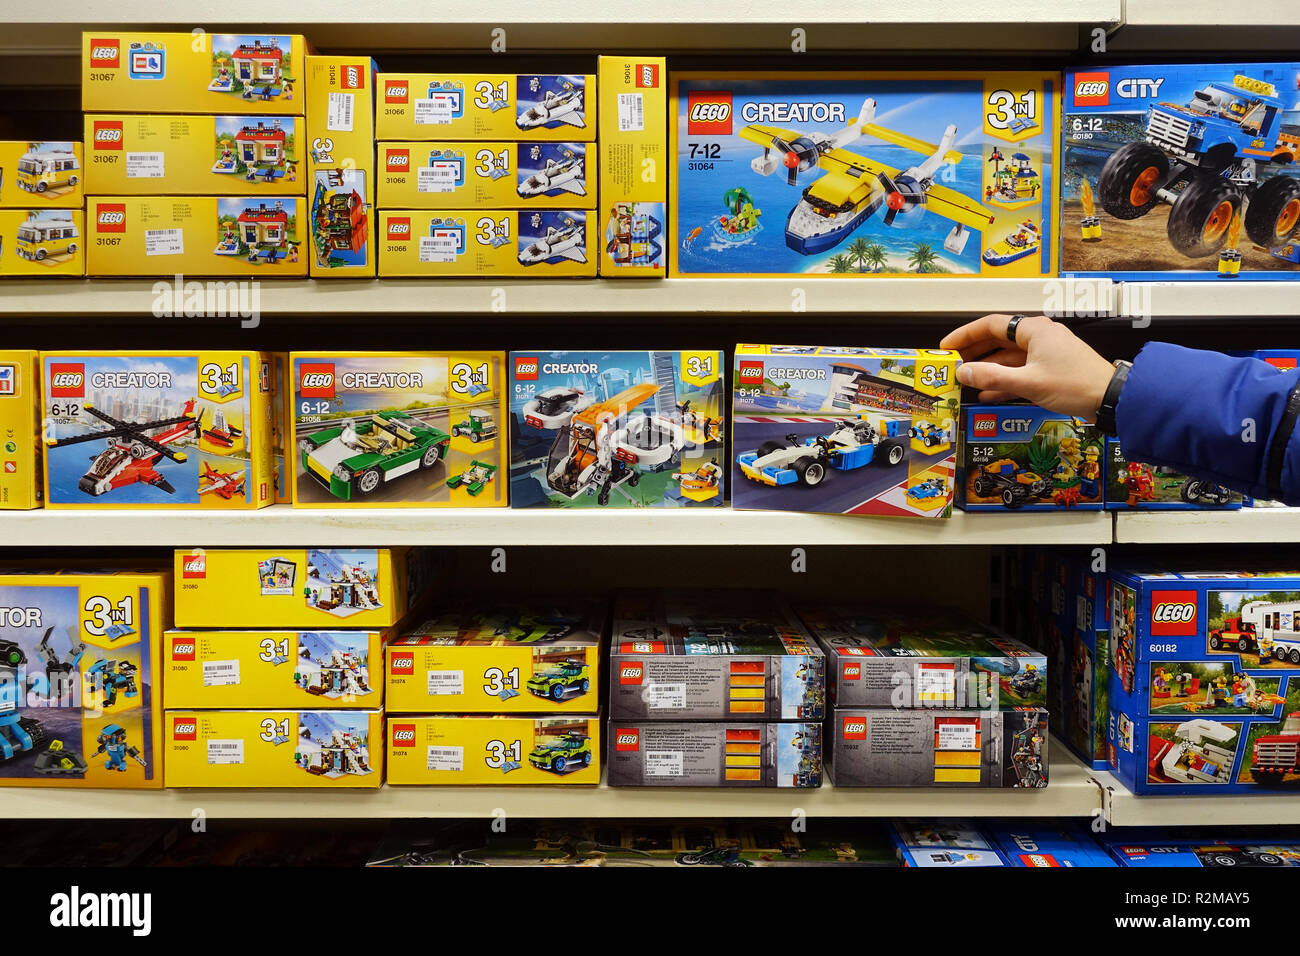 Lego creator boxes in a toyshop - Stock Image